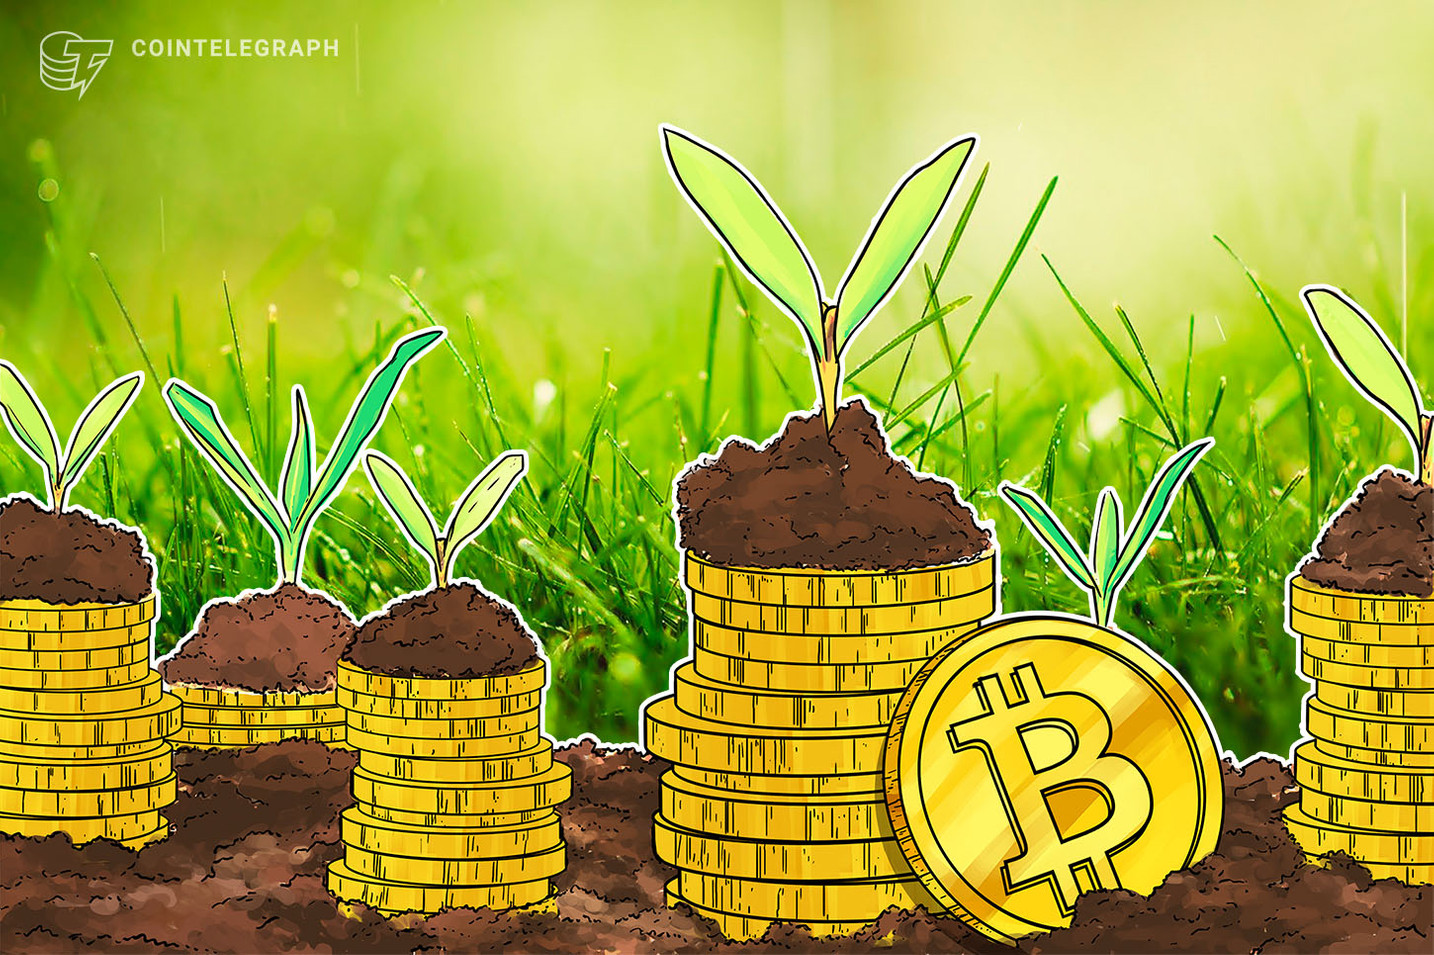 US Congress Think Tank Claims Bitcoin Is Used Mostly as 'Investment Vehicle'